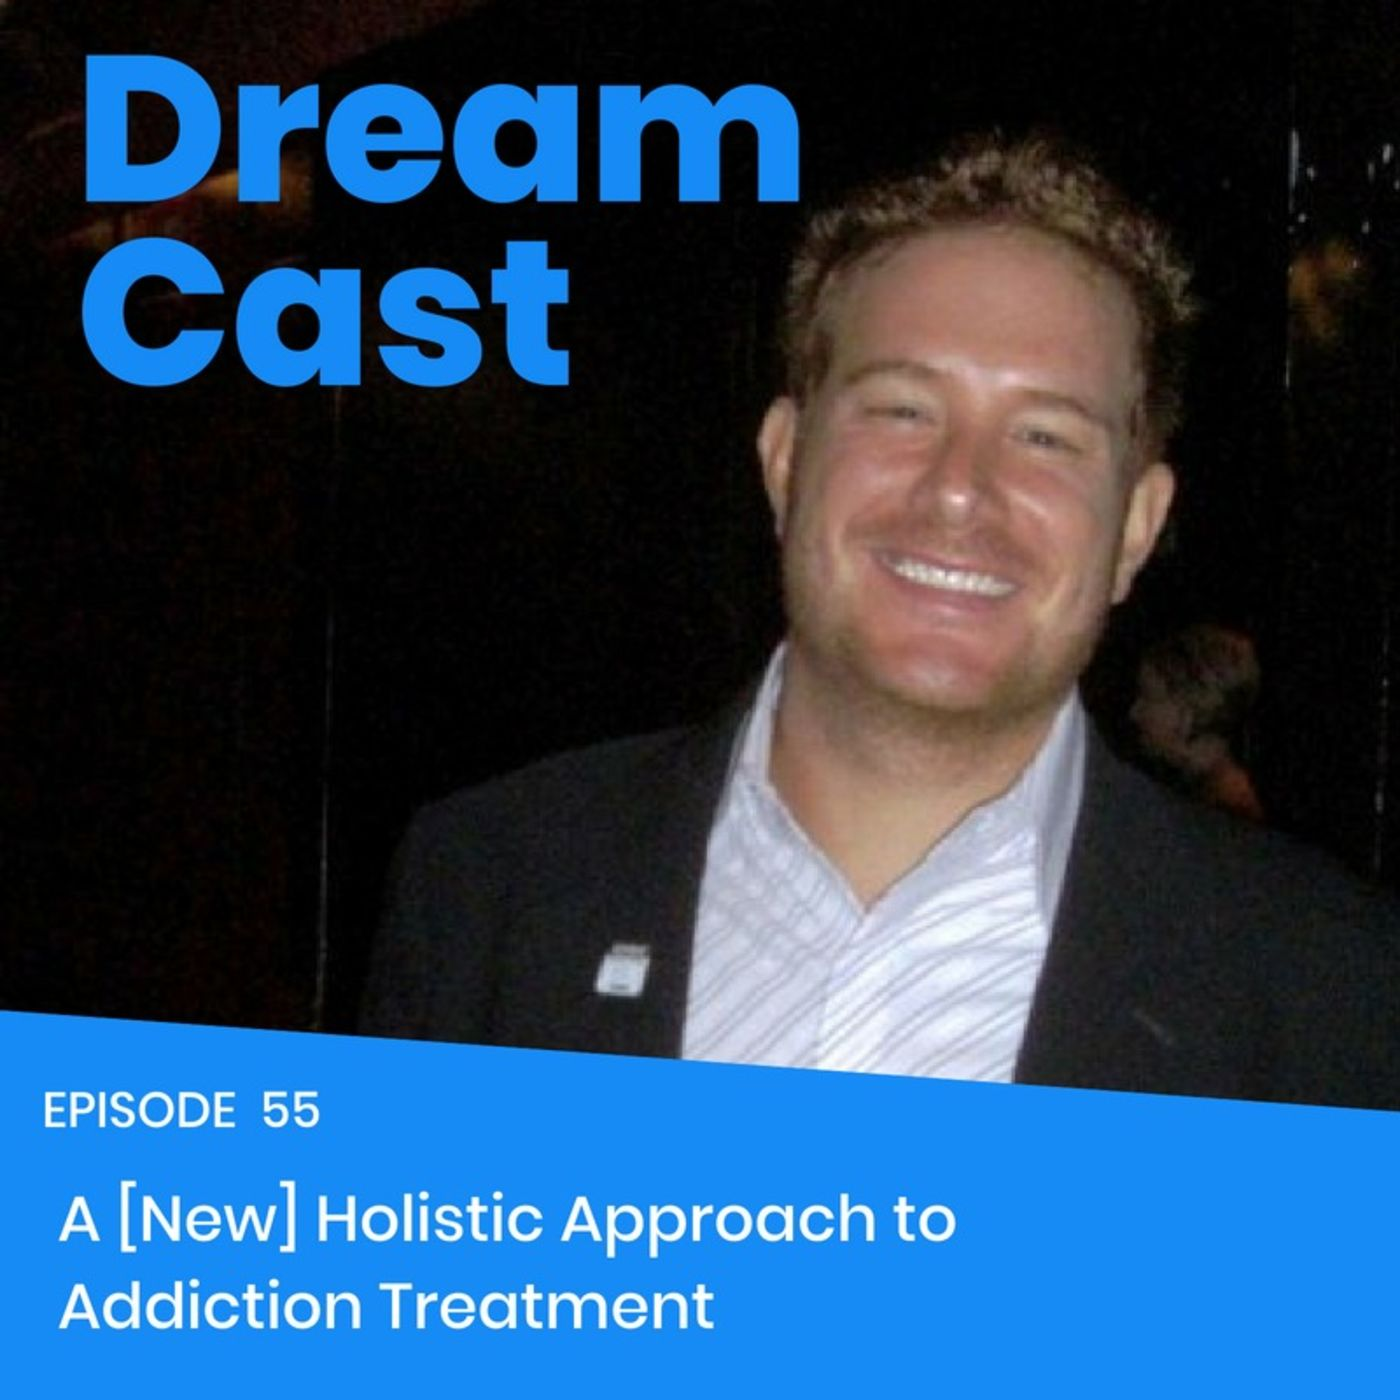 Episode 55 - A [New] Holistic Approach to Addiction Treatment